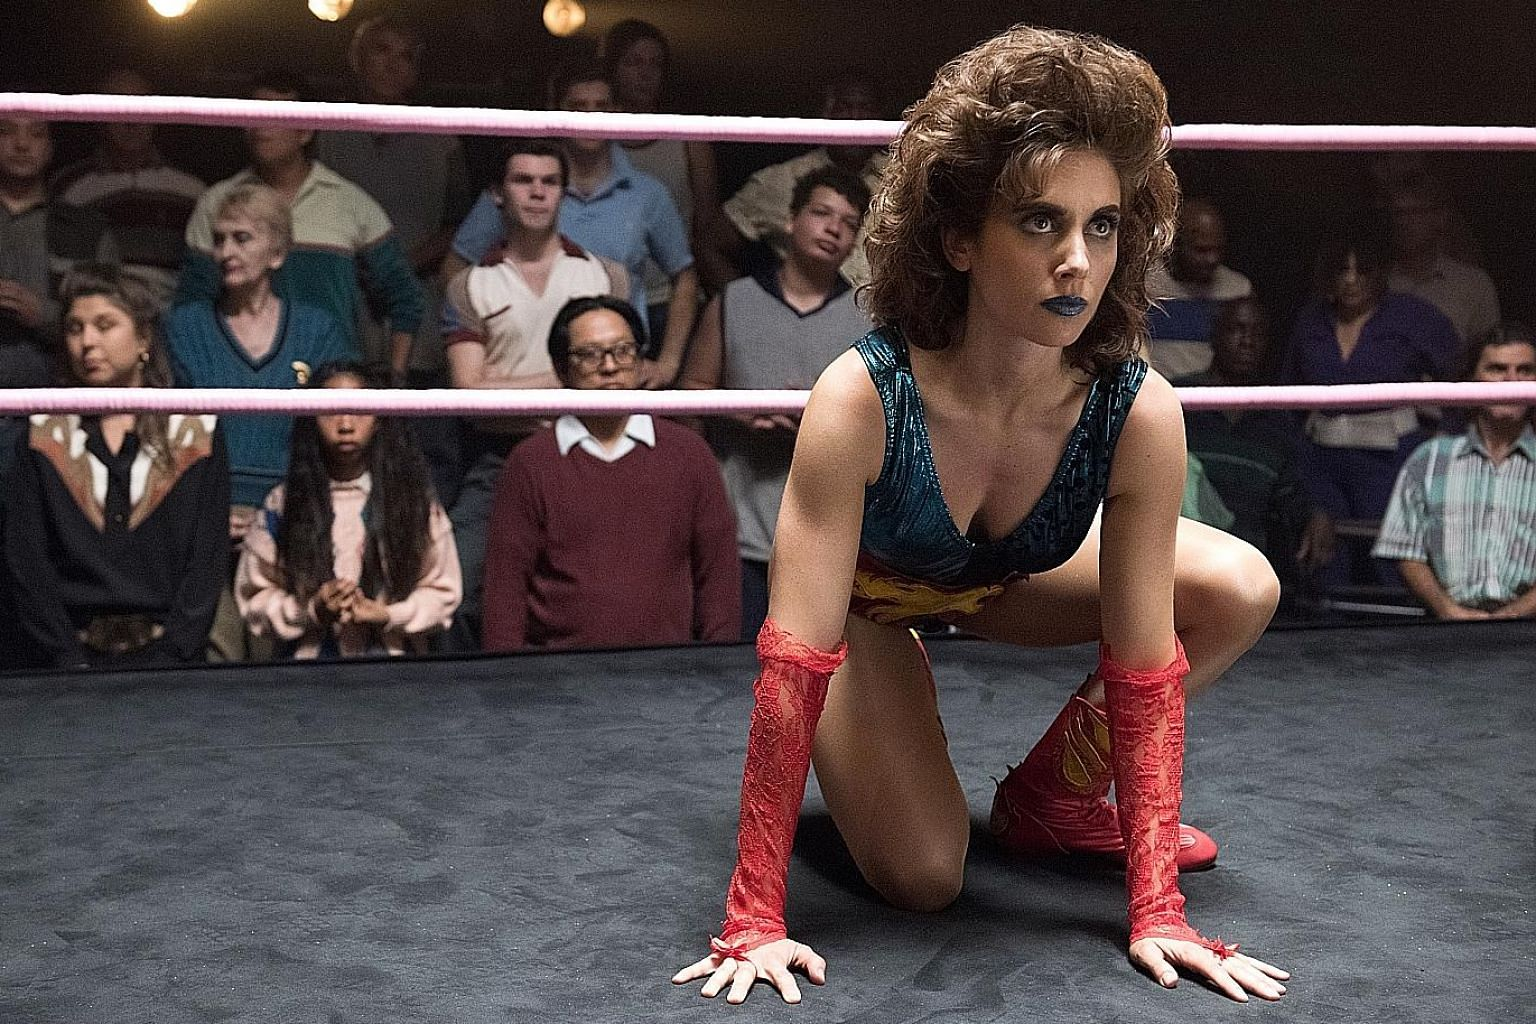 In Glow, actress Alison Brie perms her hair and plays wrestler Ruth Wilder.